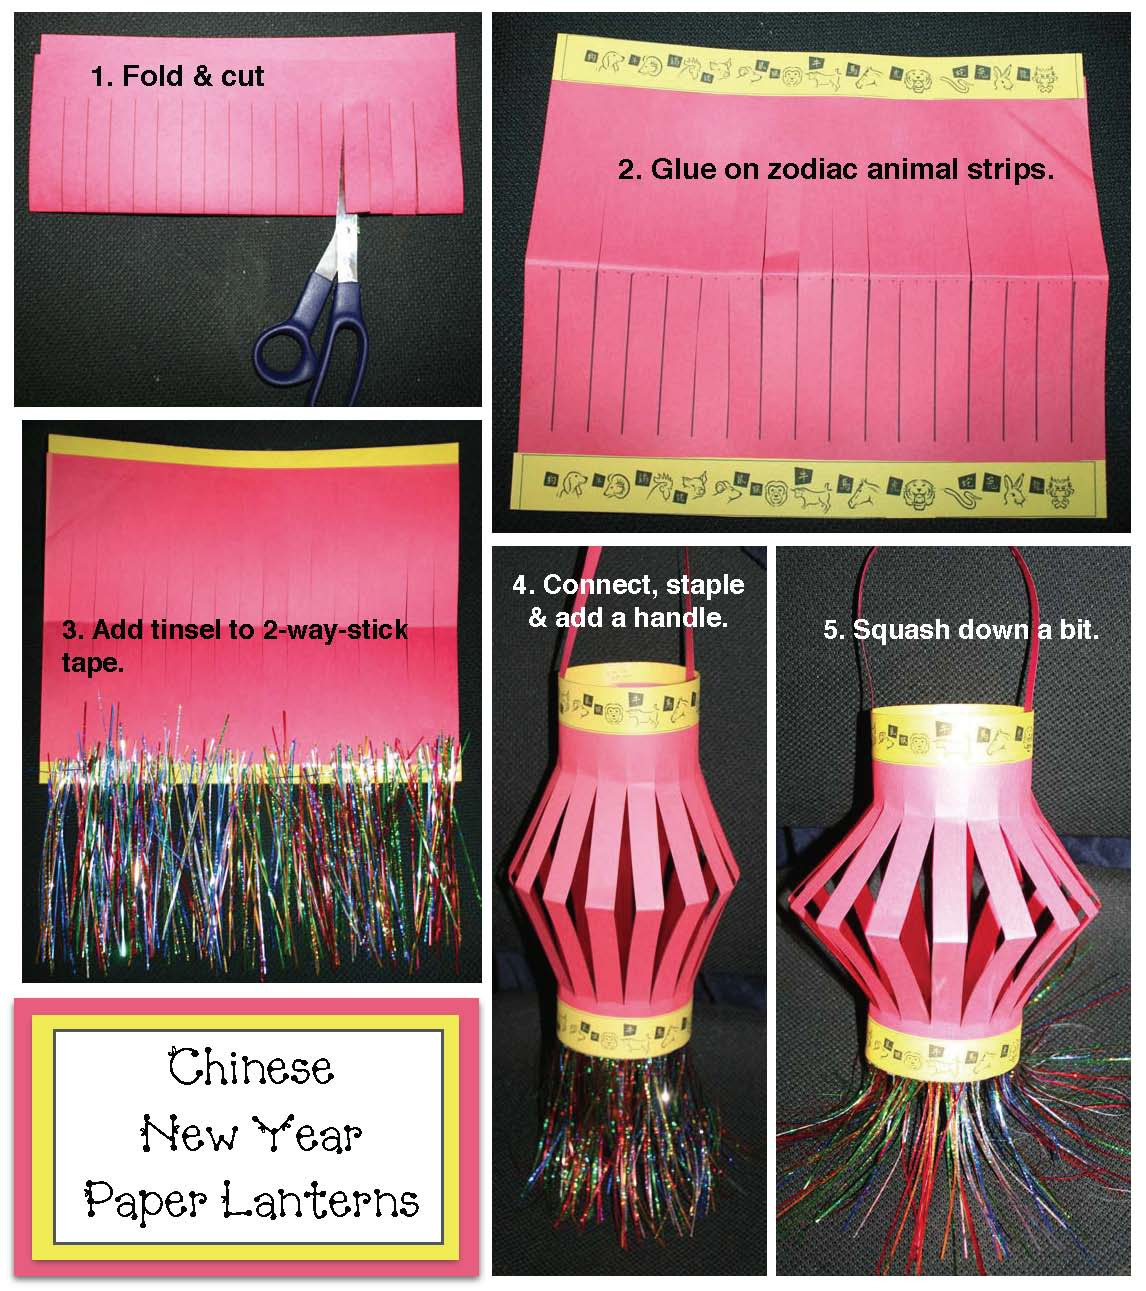 Chinese new year crafts, chinese new year activities, paper lantern craft, crafts for kids for chinese new year, chinese new year activities